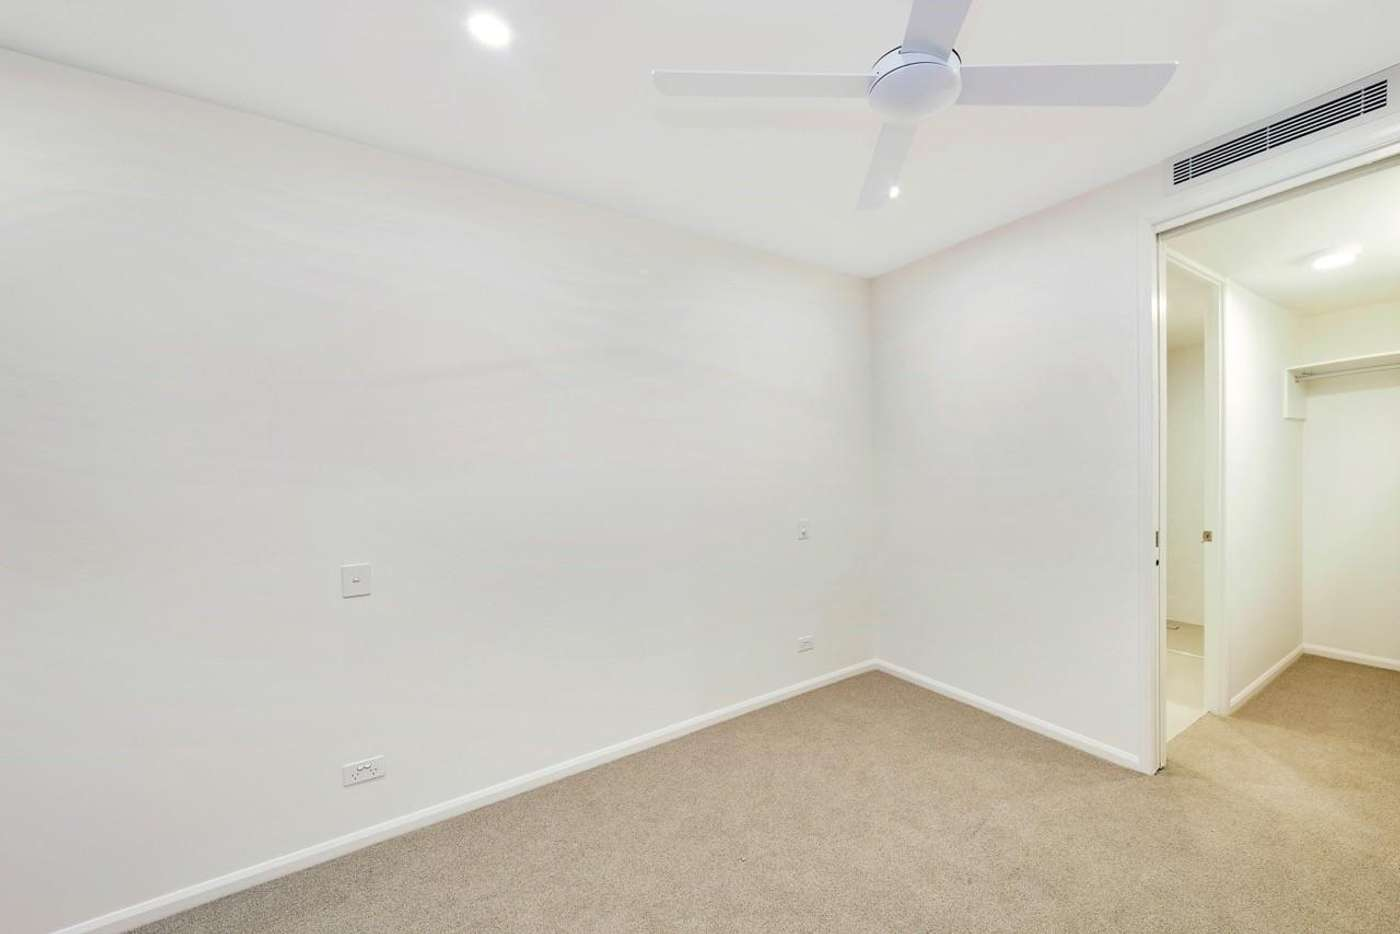 Sixth view of Homely apartment listing, 2/61 Kent Street, Hamilton QLD 4007